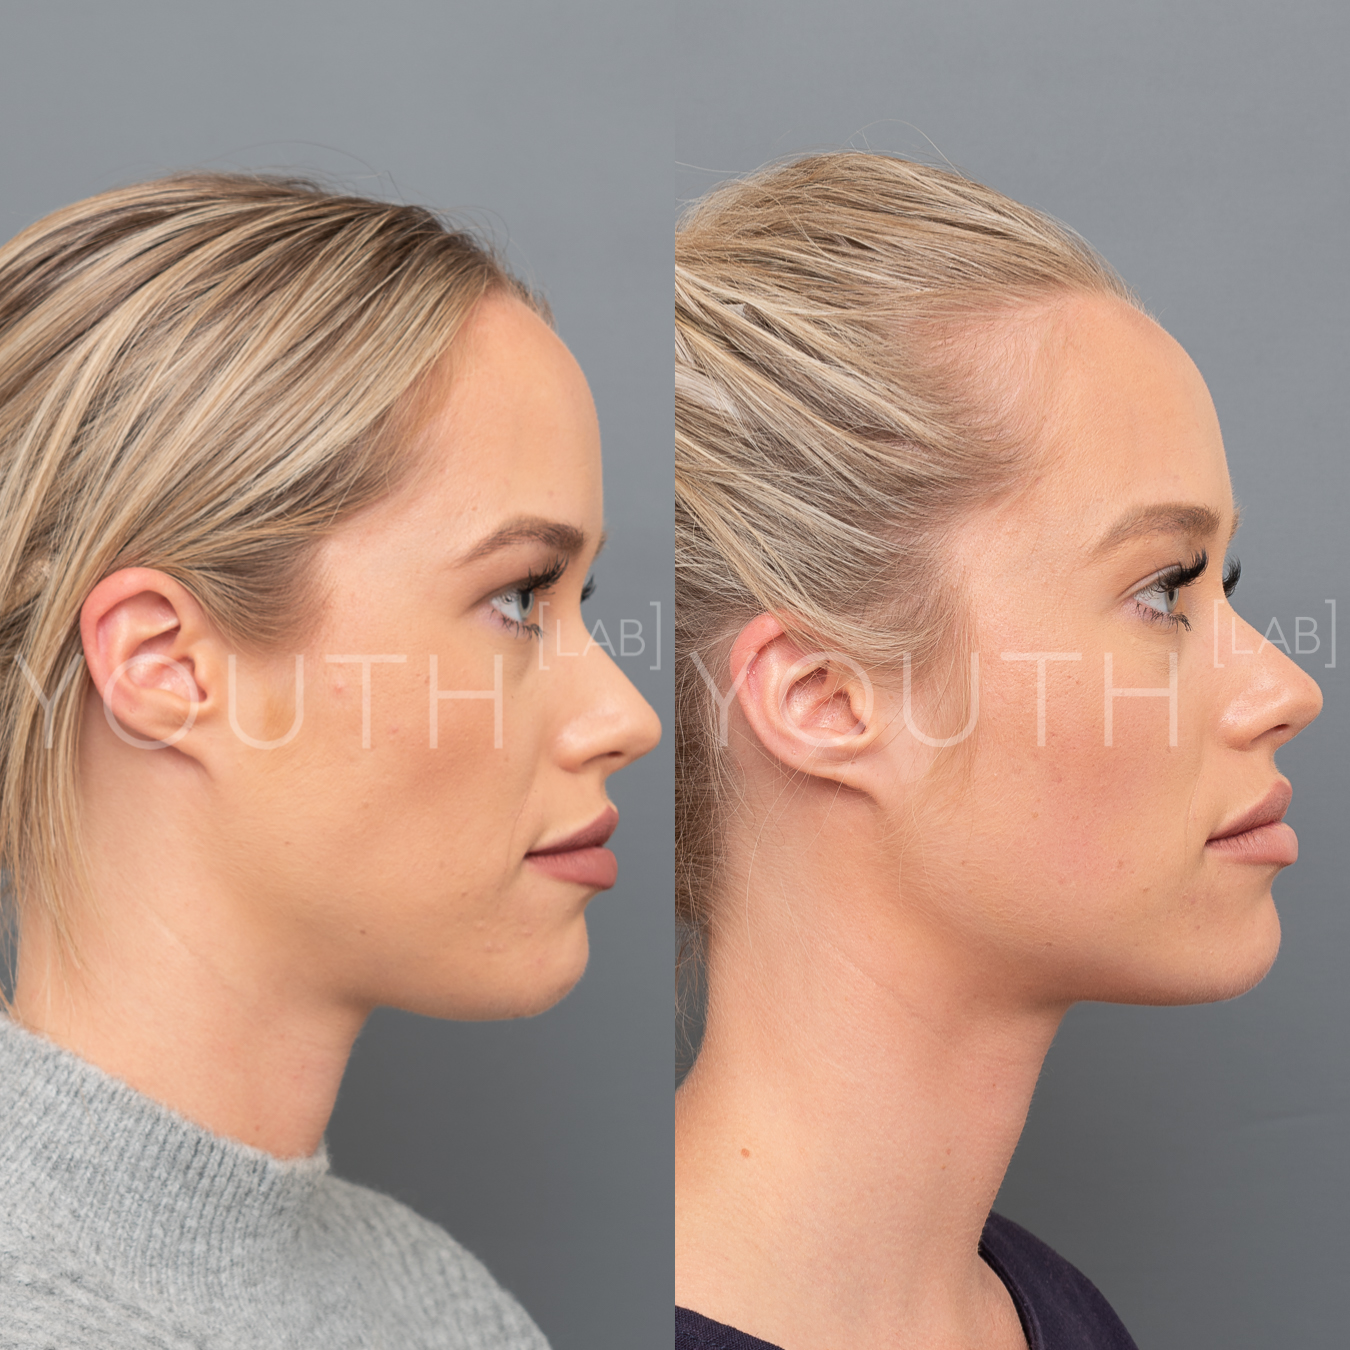 Fat dissolving injections for double chin